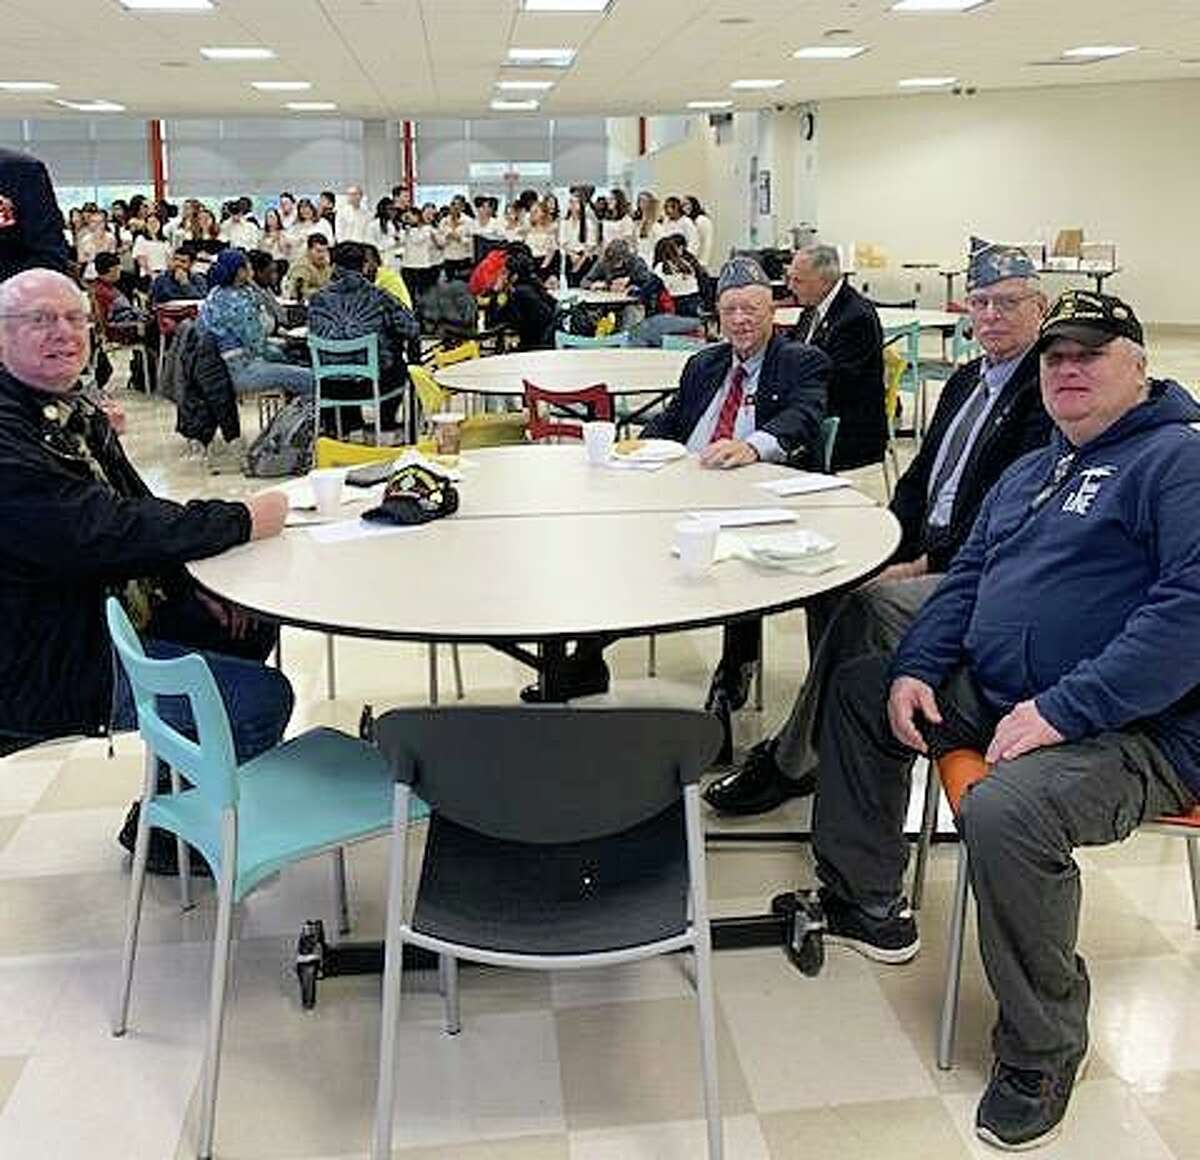 Veterans Alan Sosnowitz, left, Cortland Mehl, Jim Dudley and Peter Mason attend the the Academy of Information Technology & Engineering's 12th annual Veterans Day Breakfast on Nov. 7, 2019 in Stamford, Conn.